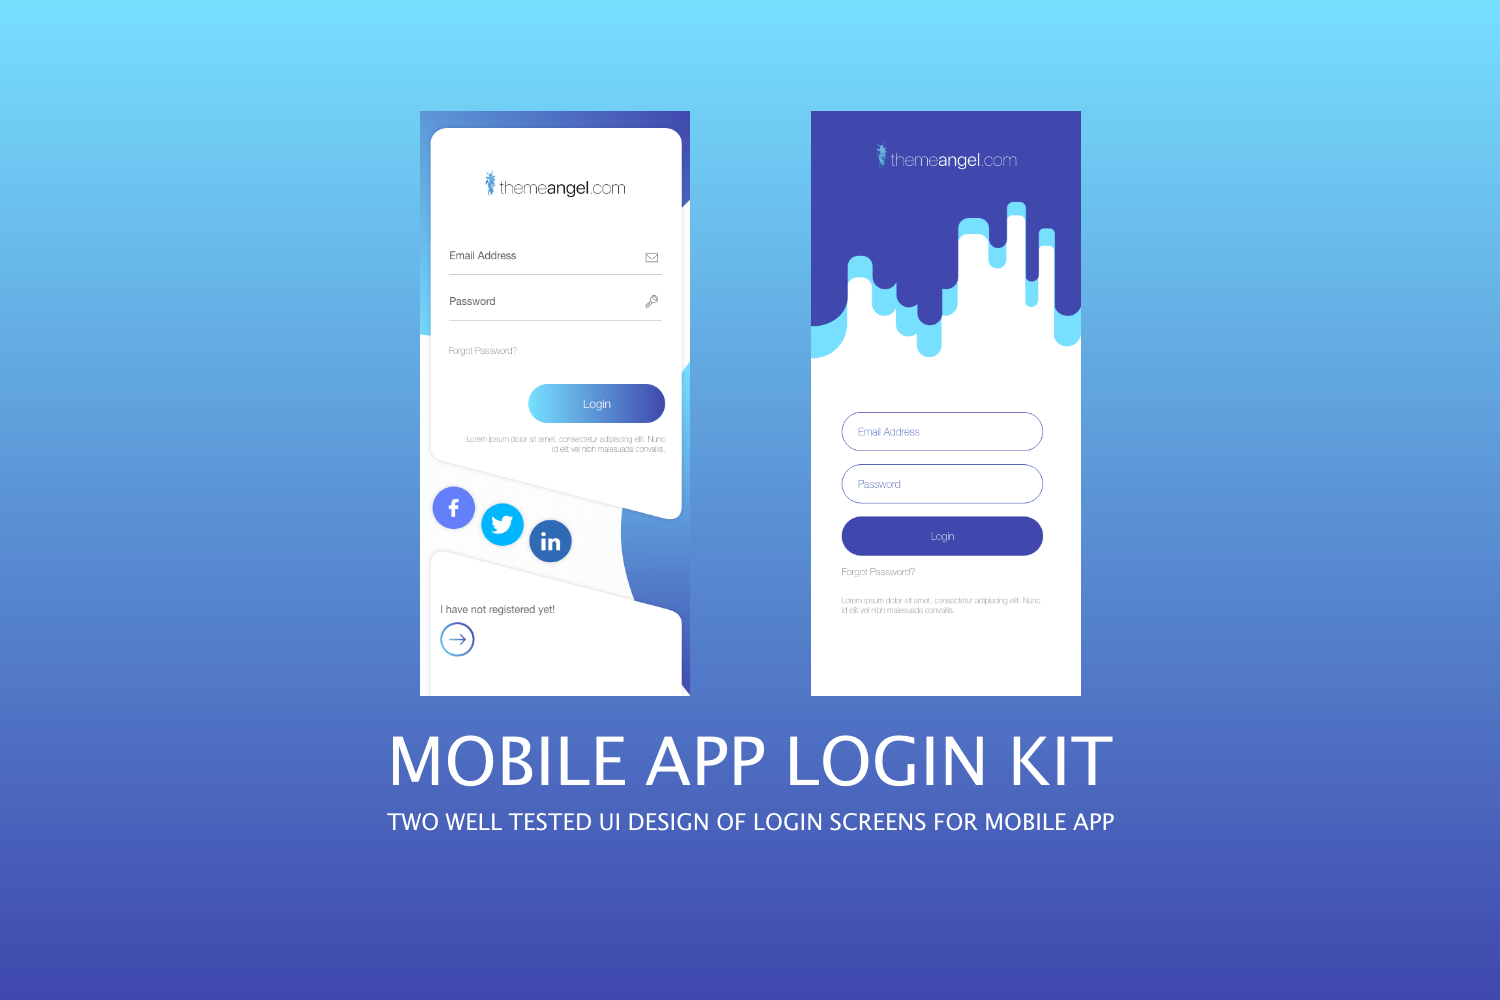 Mobile App Login Kit